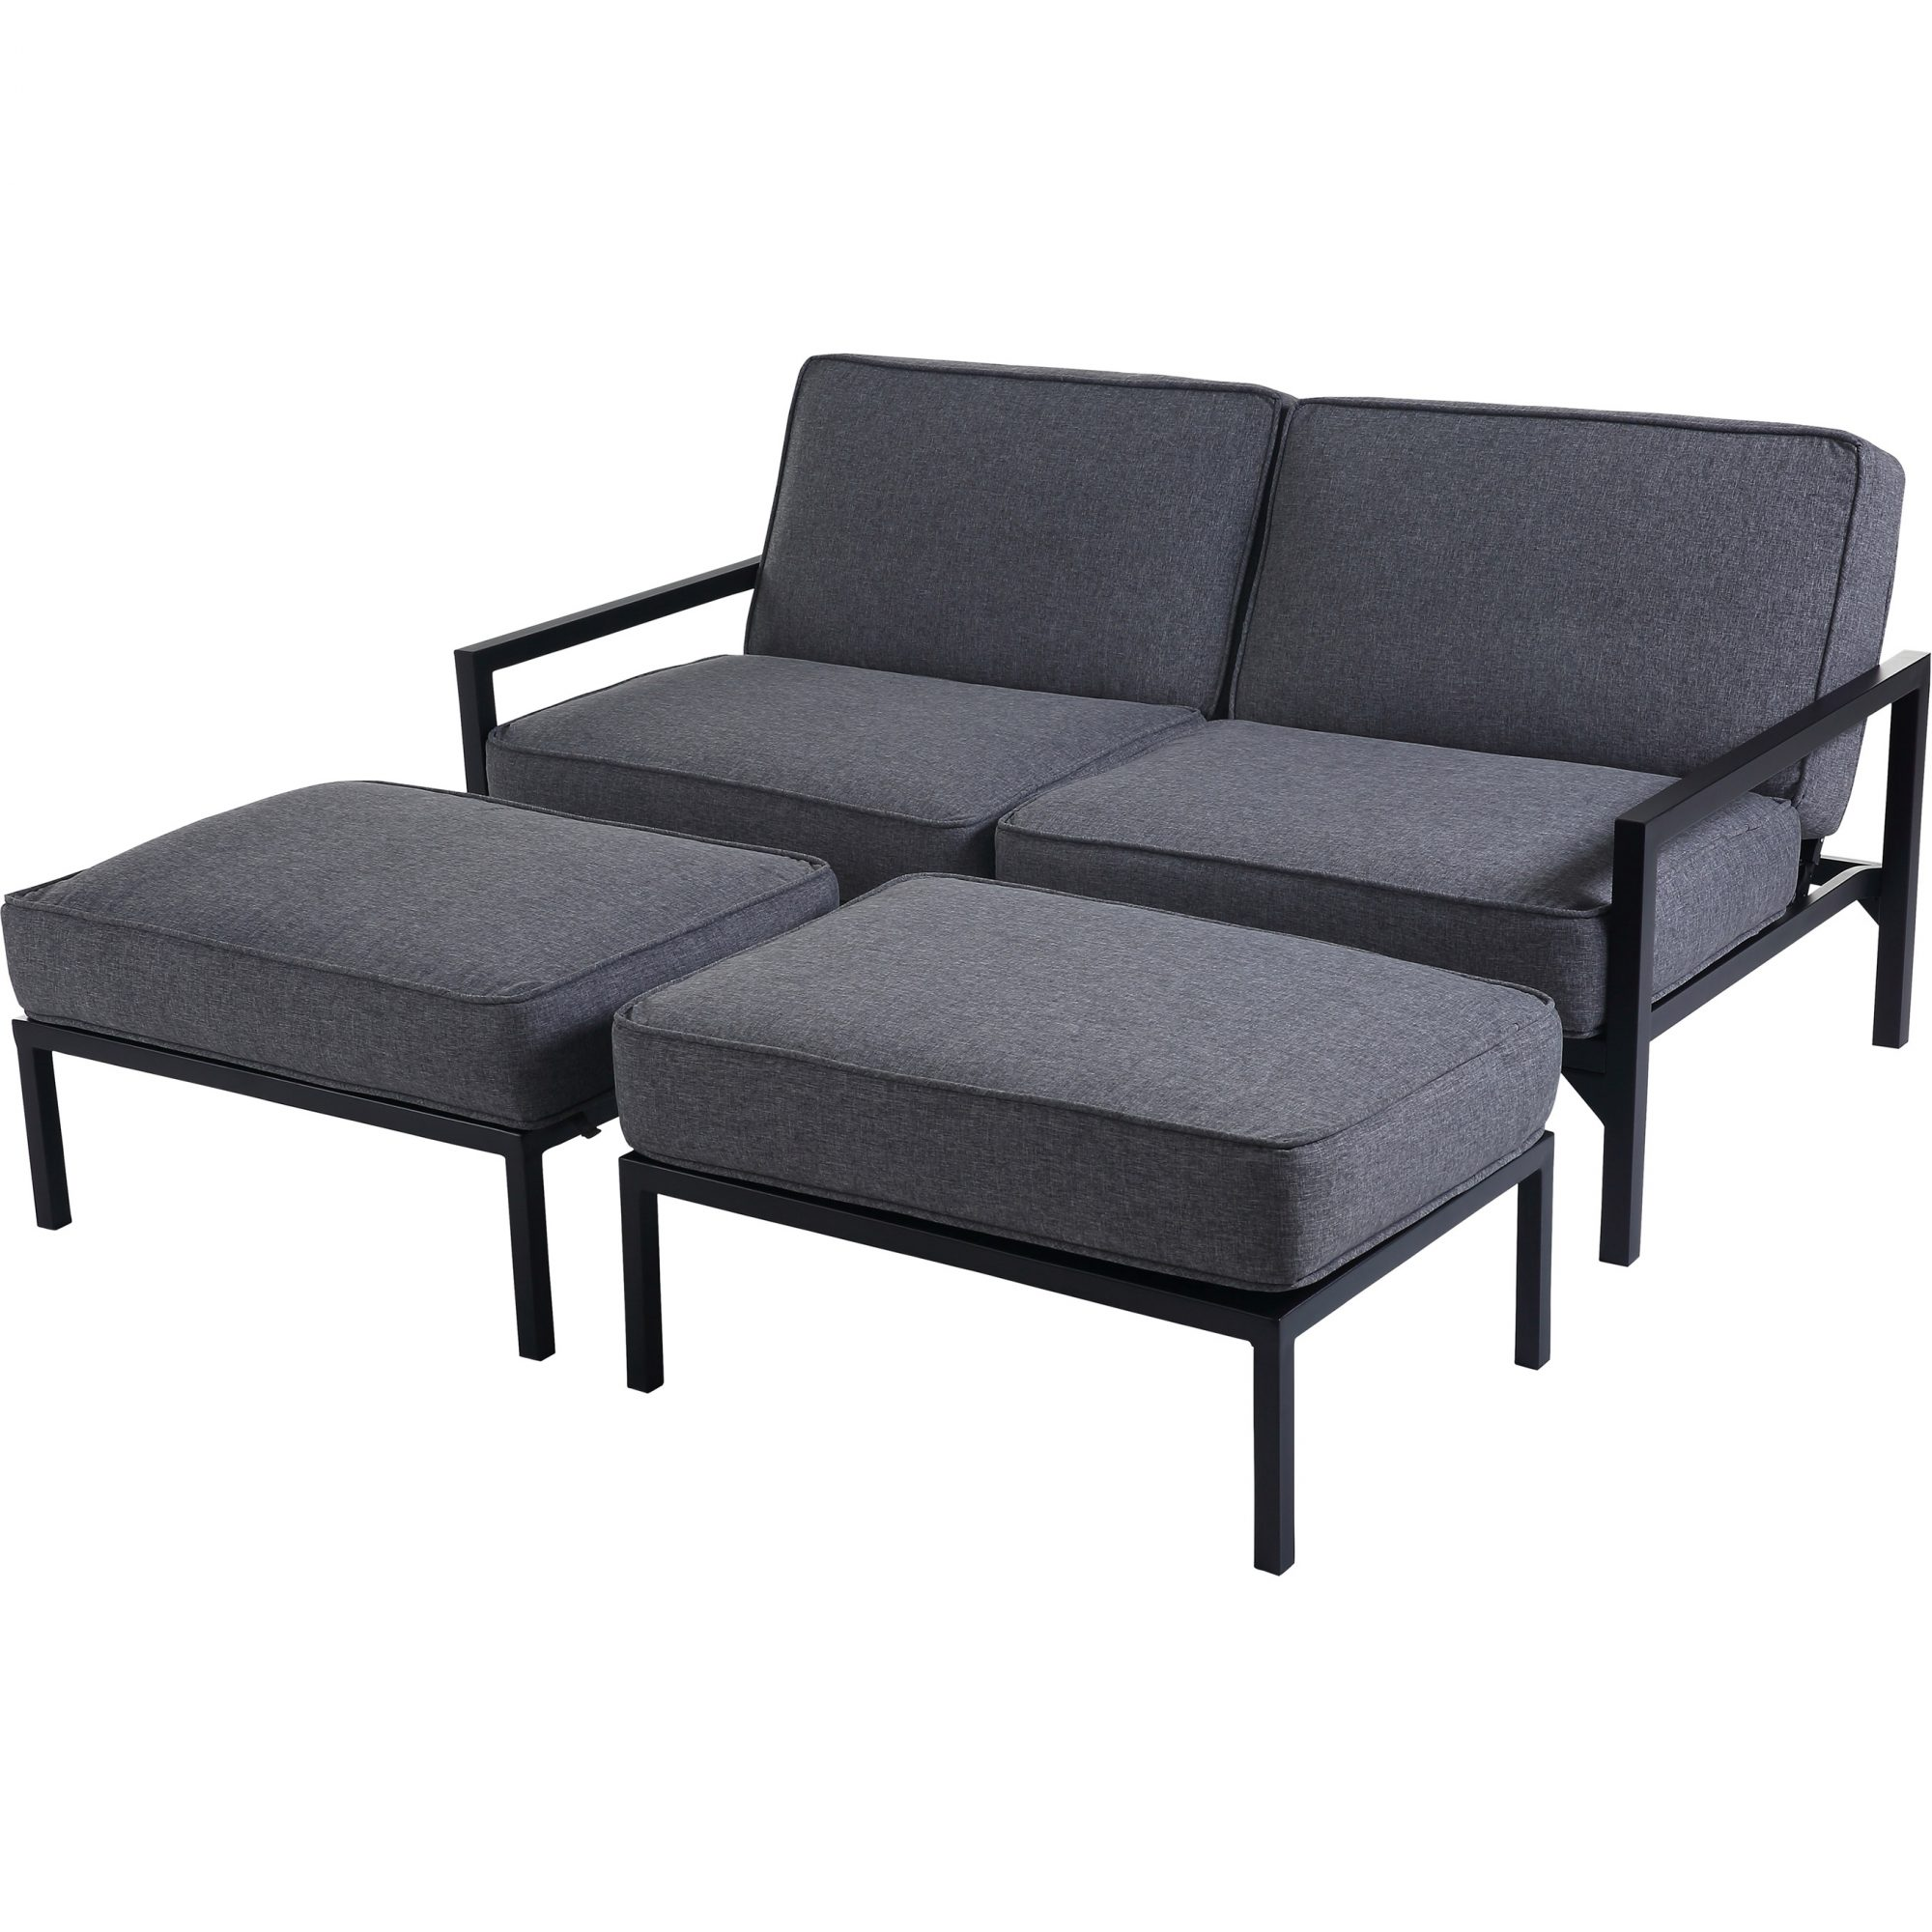 Provide lounge-worthy seating